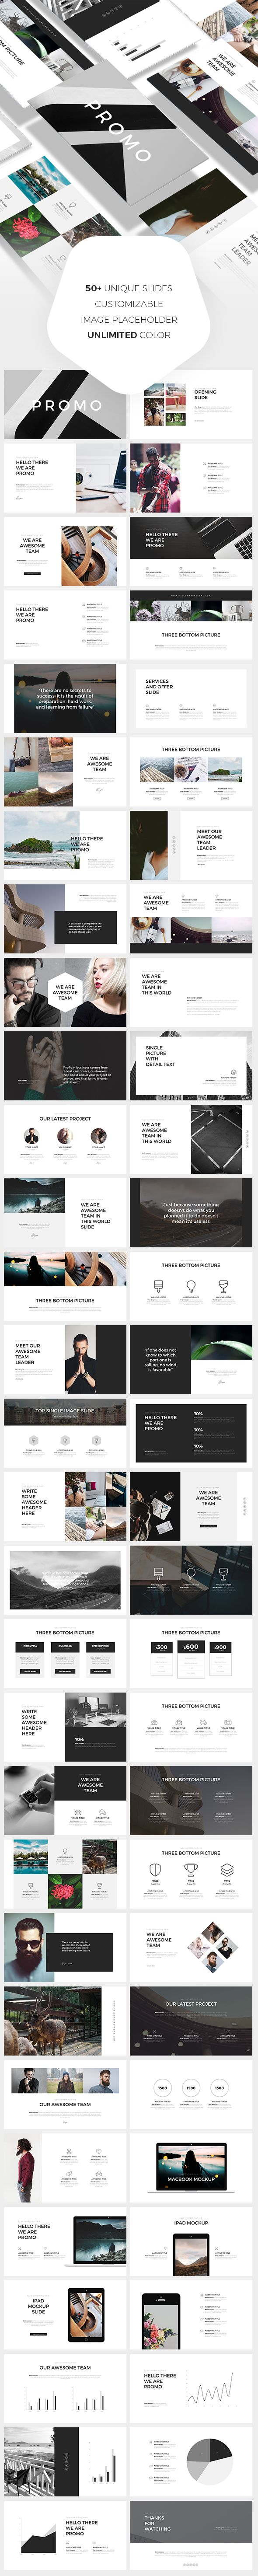 Promo PowerPoint Template